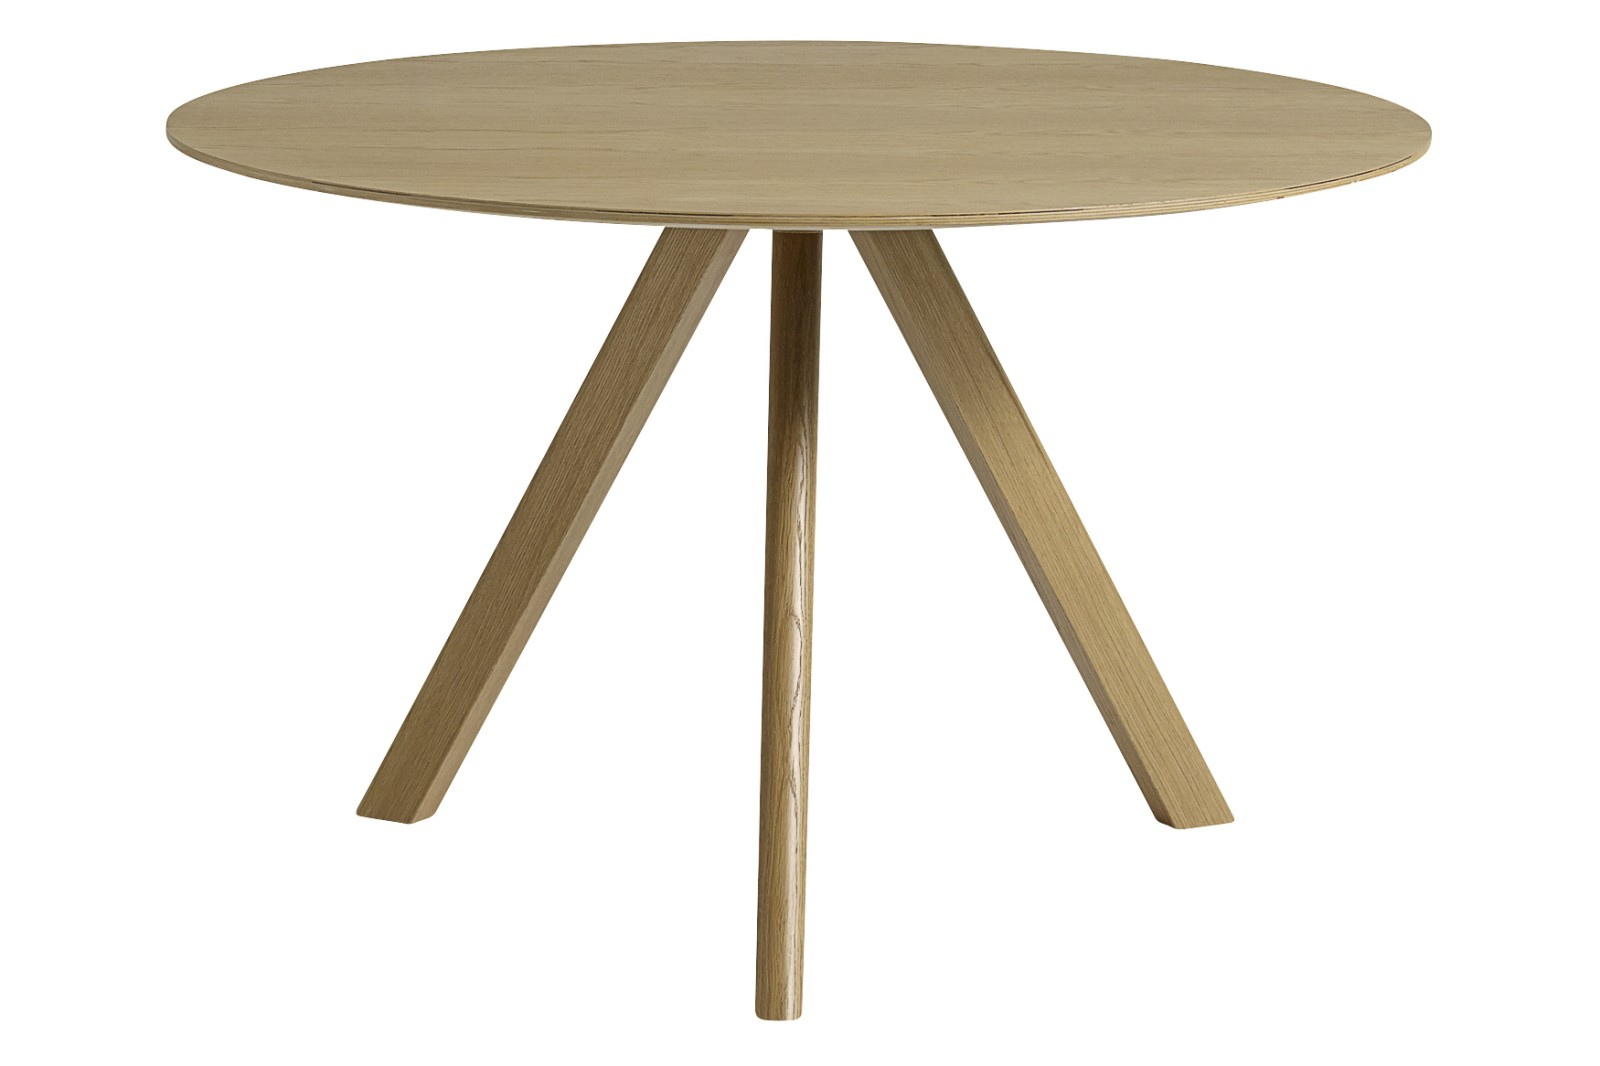 Copenhague Veneer Top Round Dining Table CPH20 Clear Lacquered Oak, Large